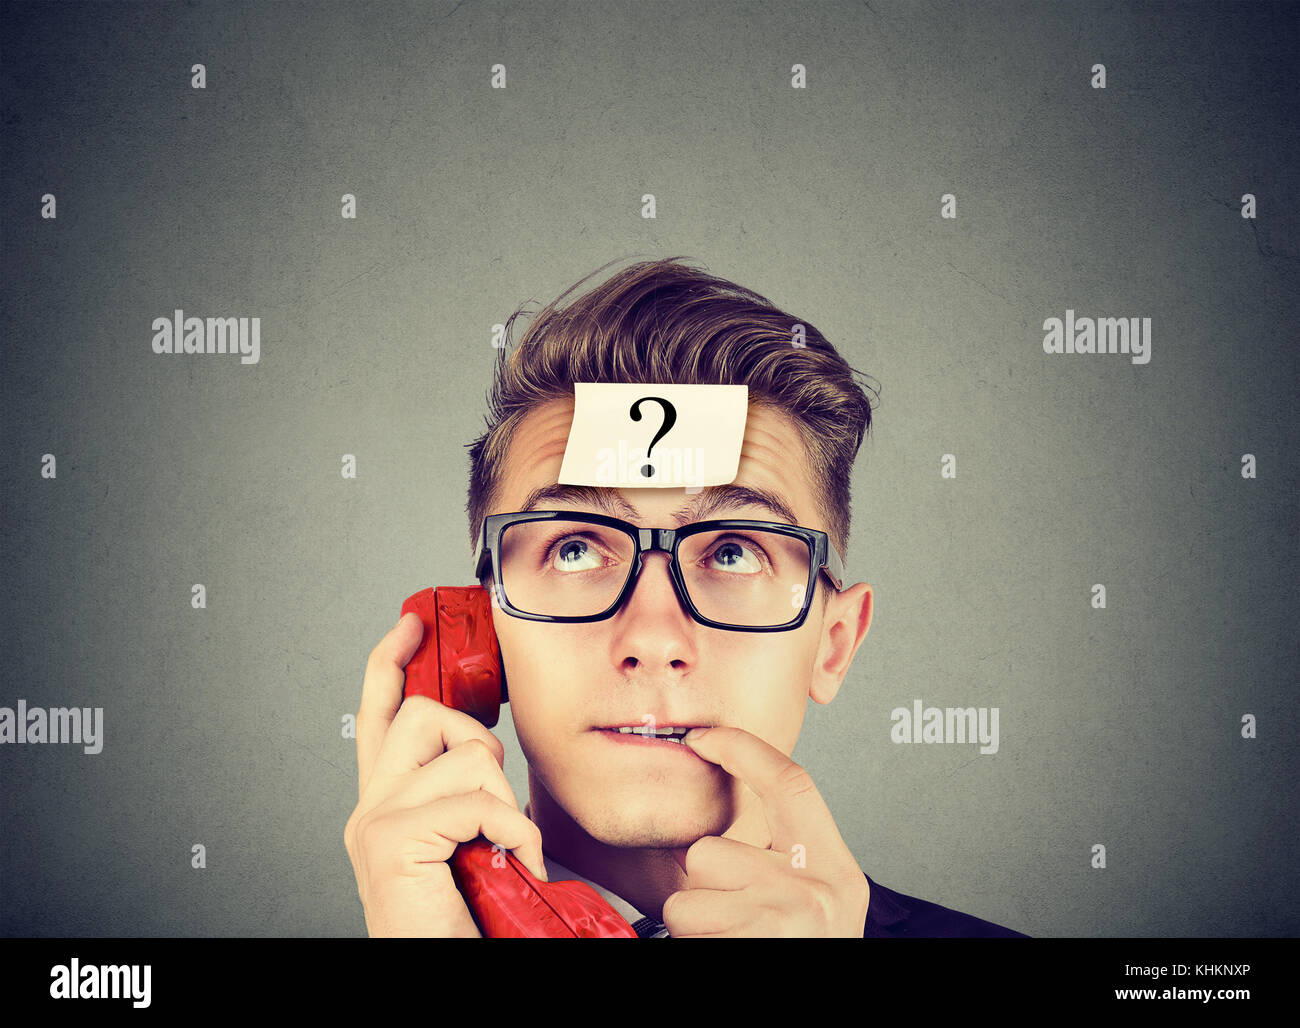 Perplexed young man with question mark having a telephone conversation - Stock Image